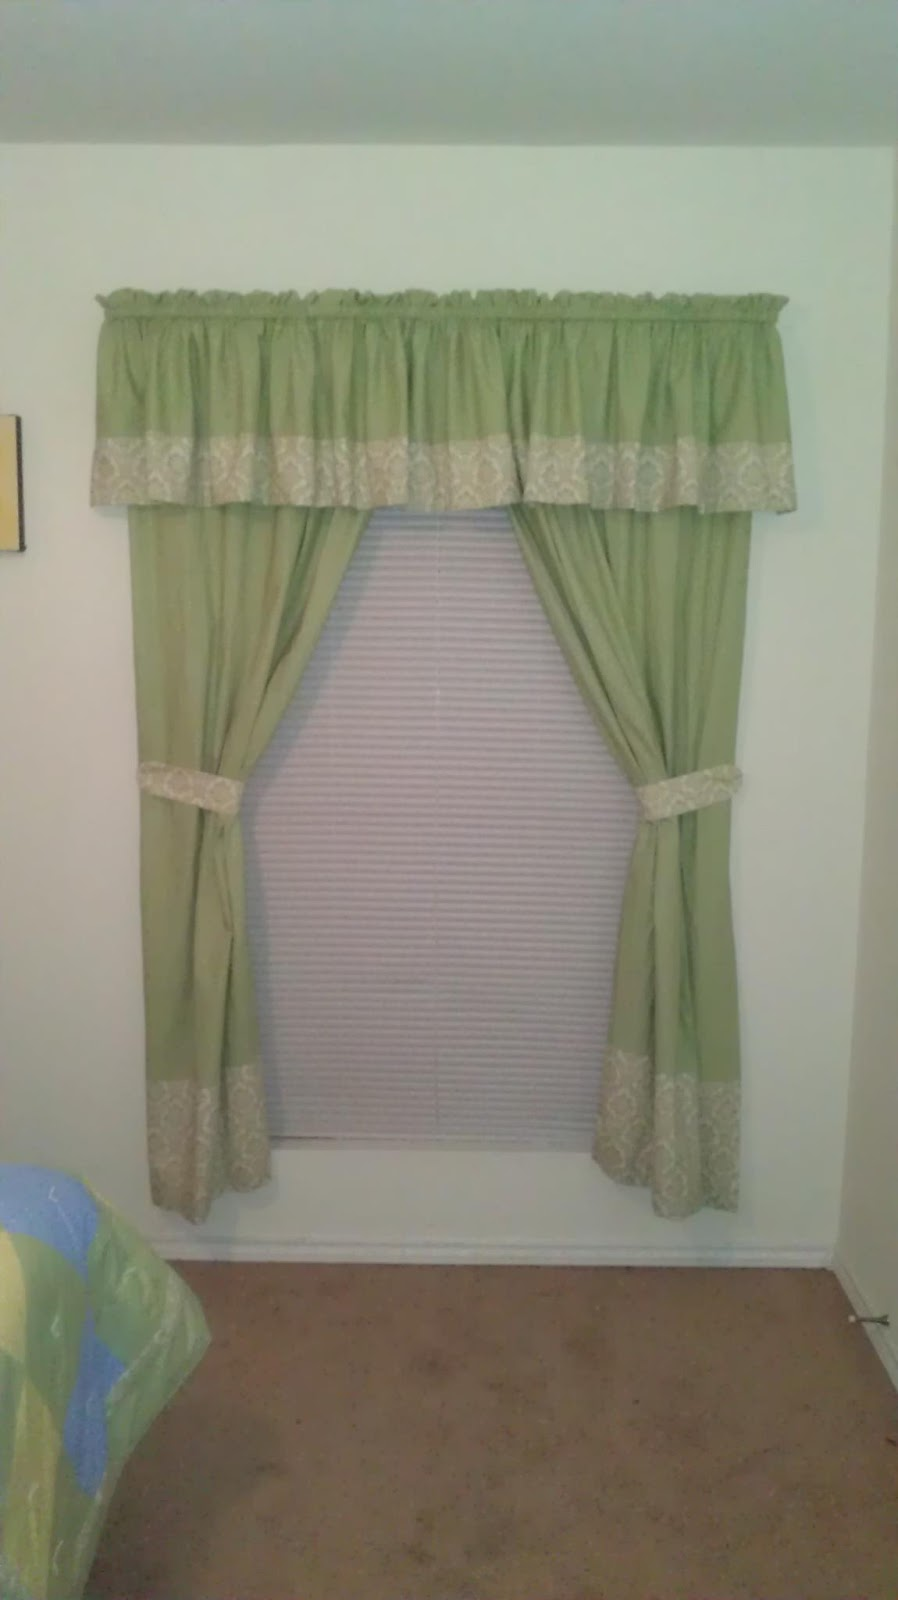 Fabric curtain tie backs - You Will Just Need A Few Scraps Of Fabric A Quarter Of A Yard Is More Than Enough You Will Also Need Some Curtain Rings Which Can Be Purchased At Any